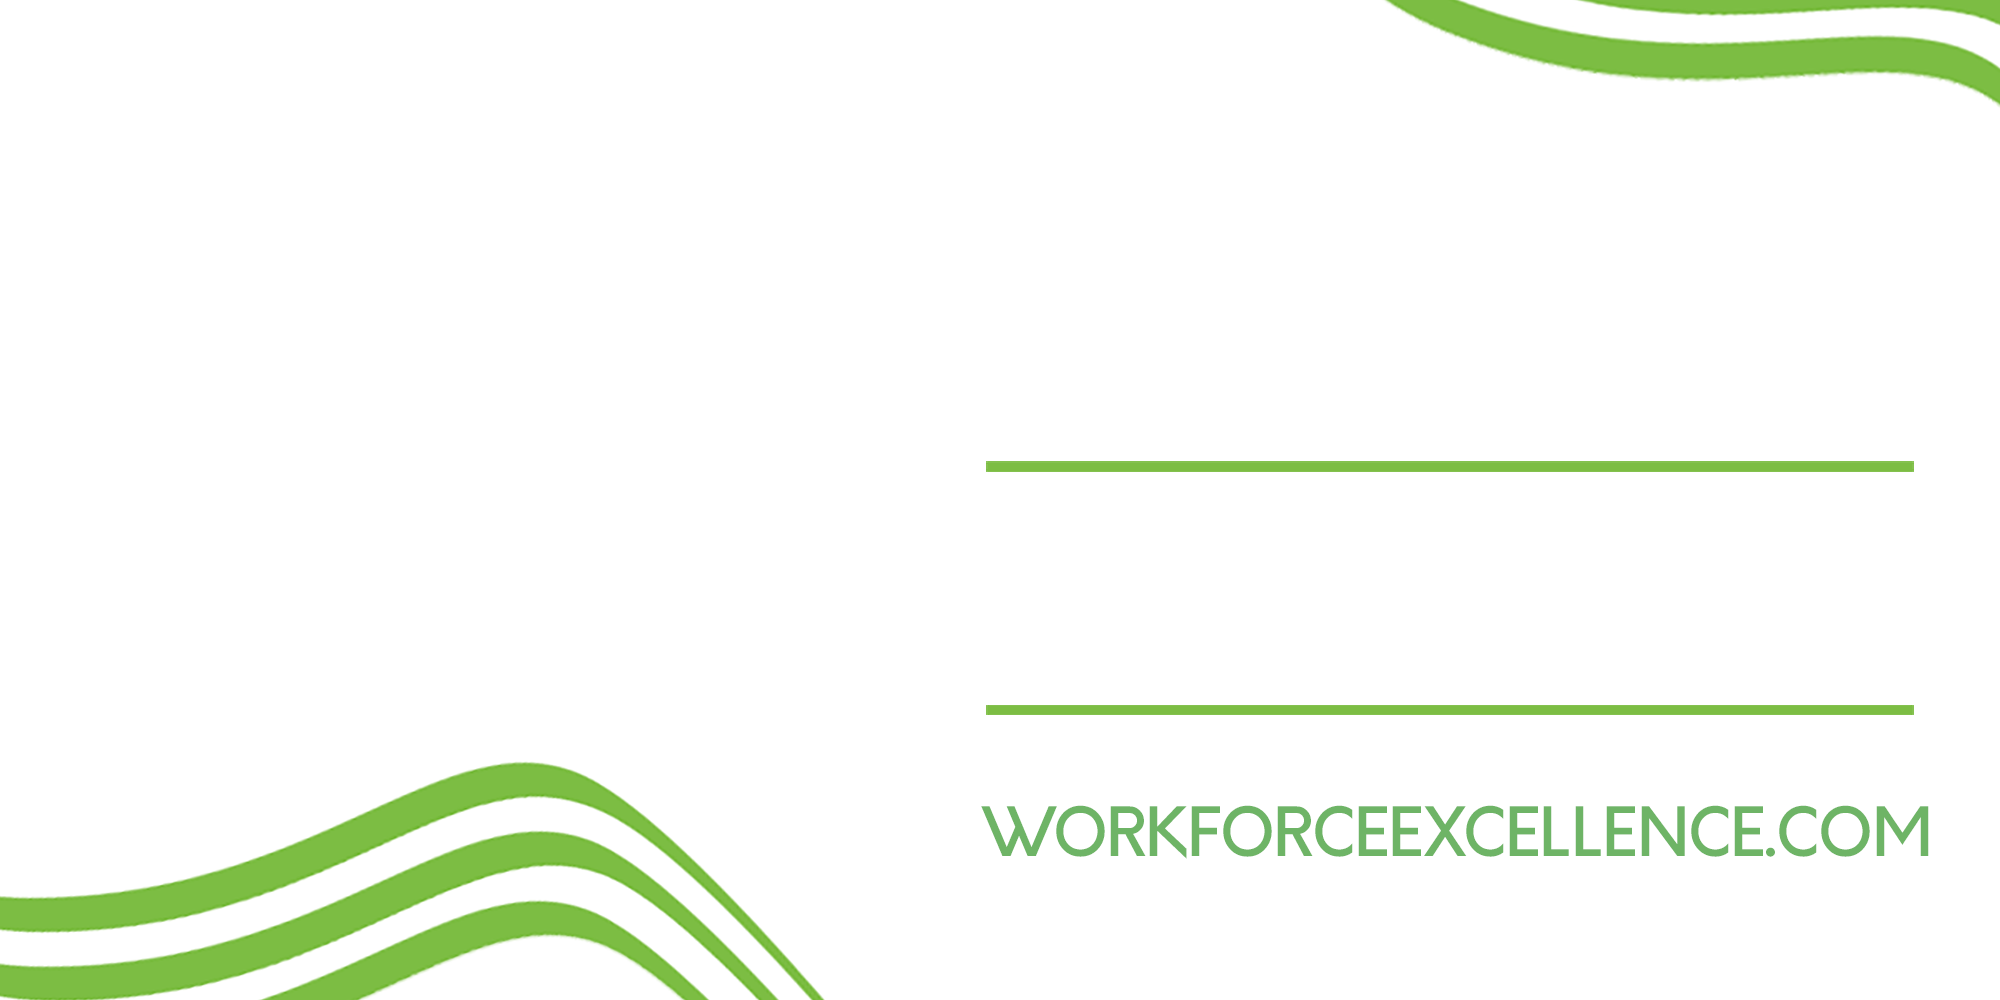 About Us - The Center for Workforce Excellence